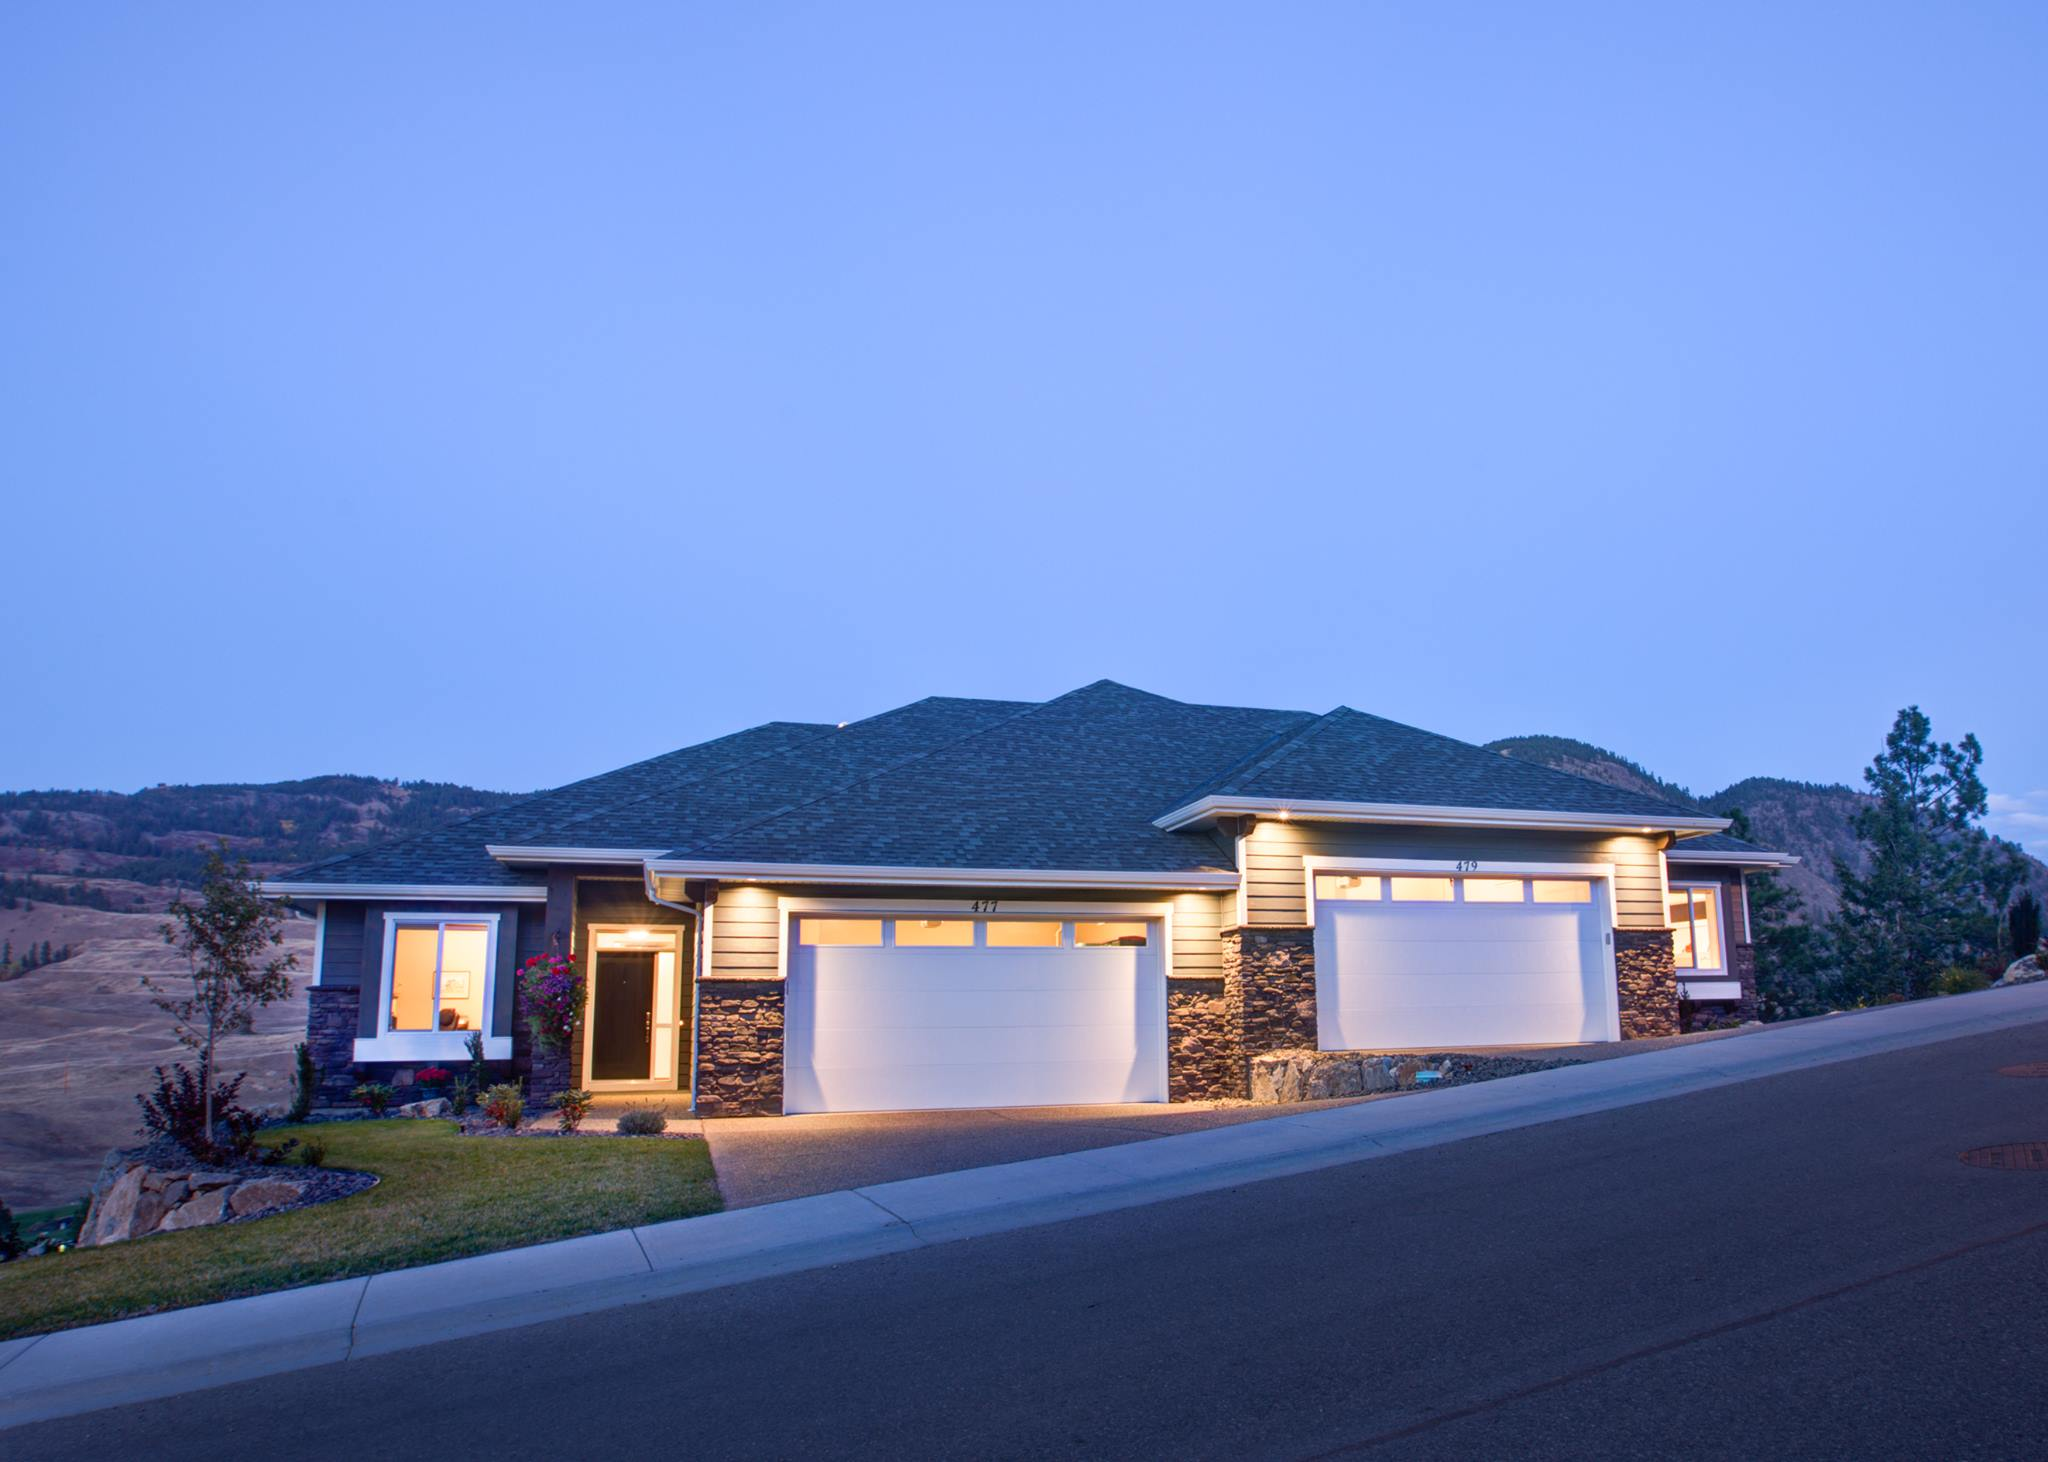 Newly Built Home on Hill - Double Car Garage